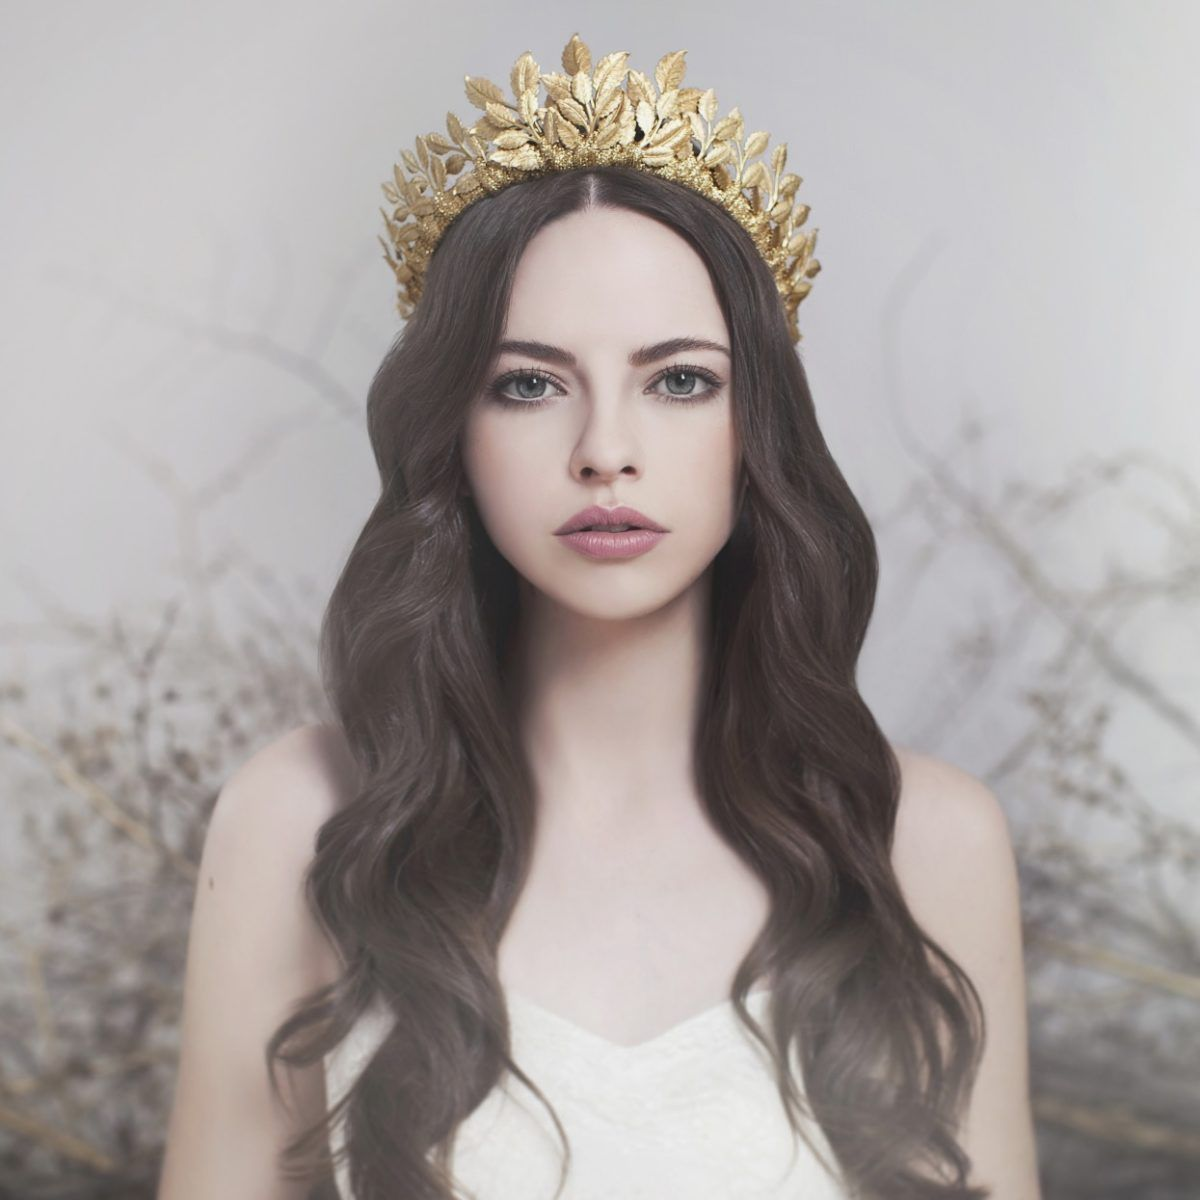 Hairstyles With Crown Queen: Tiaras, Crowns, Crown, Wedding